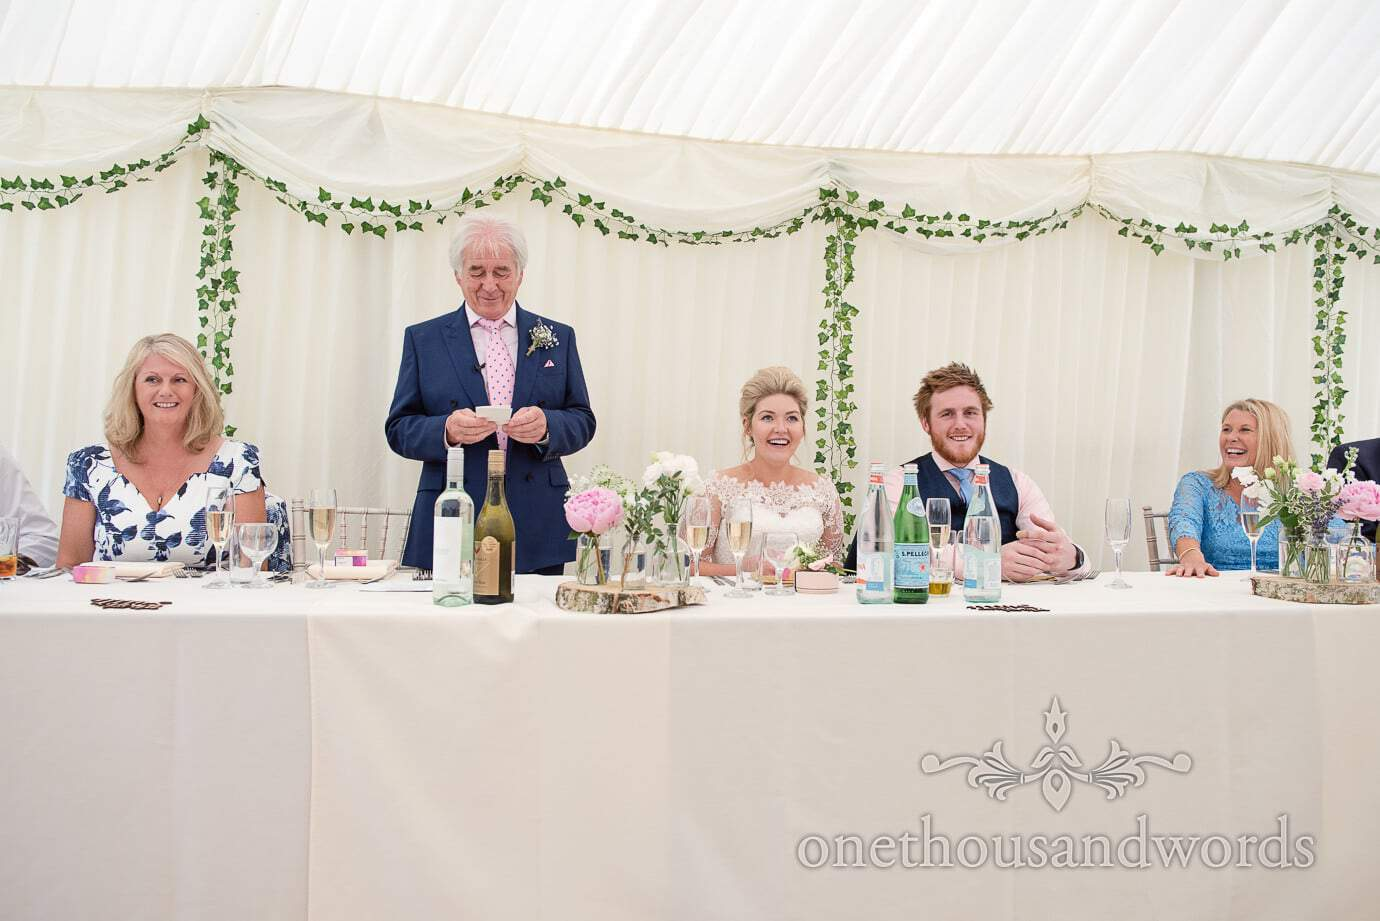 Father of the bride's wedding speech at country wedding in white marquee